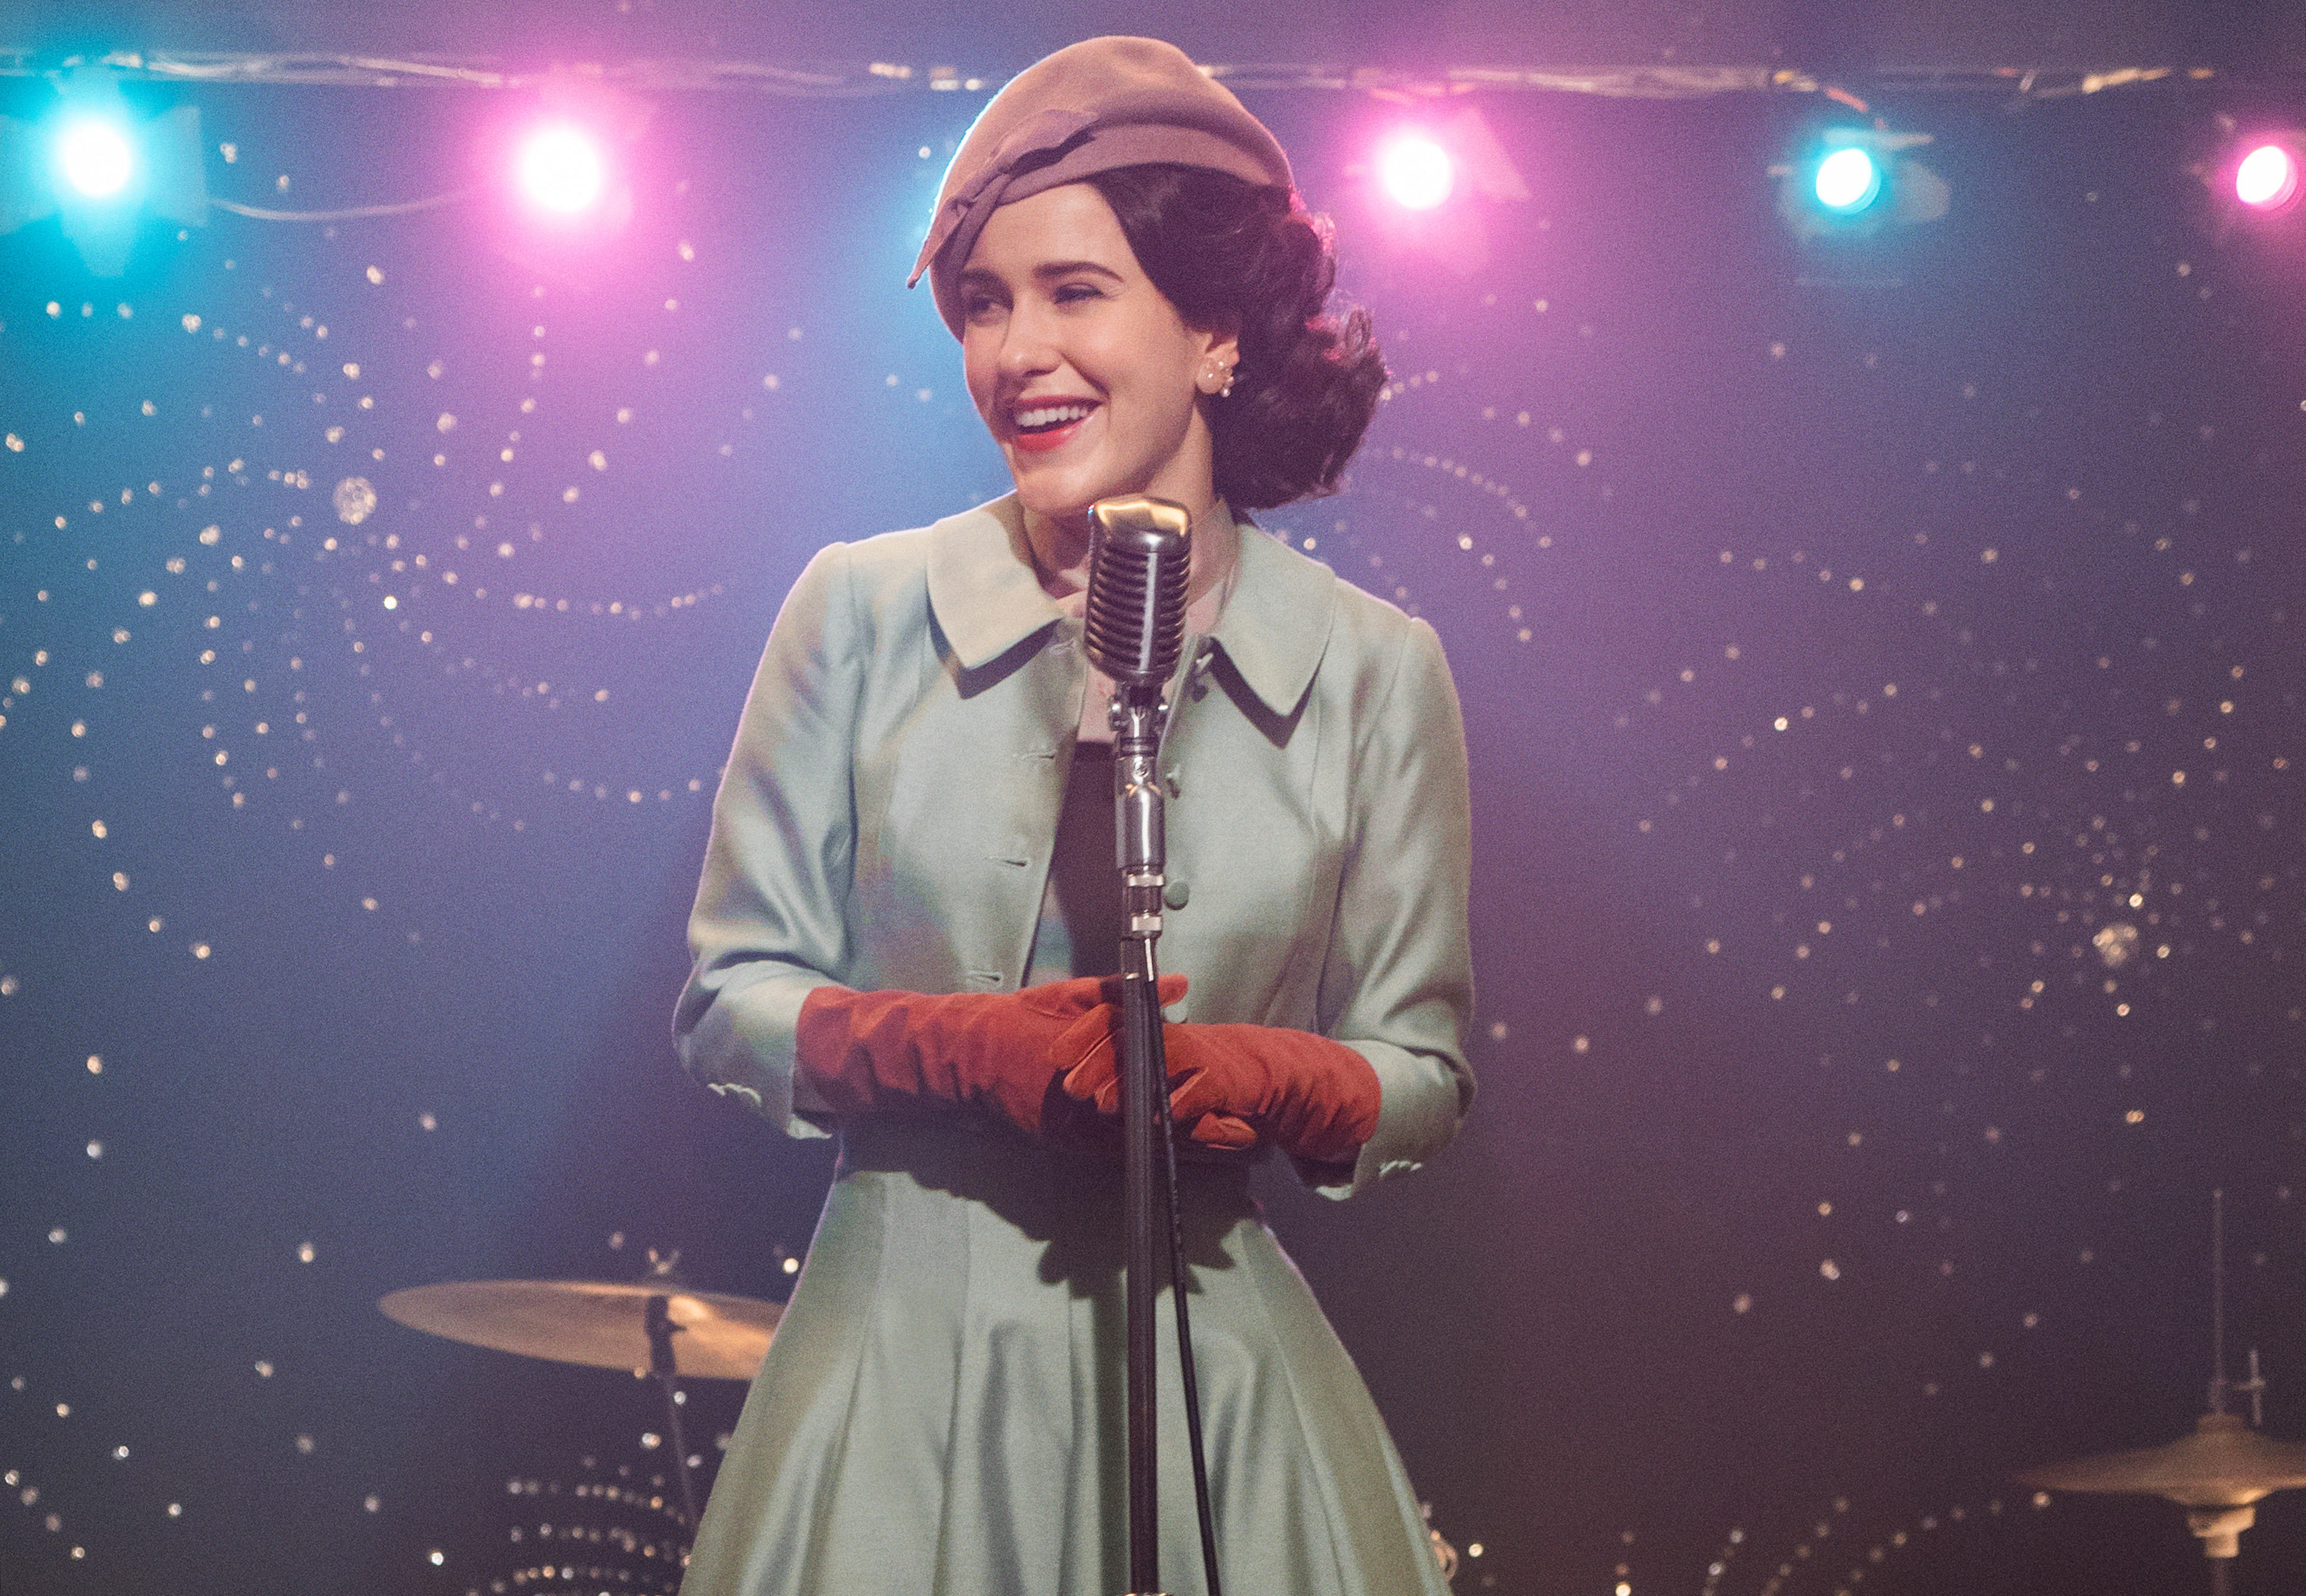 the-marvelous-mrs-maisel-season-two-mmm-201-01618-rt3-fnlcrop-rgb